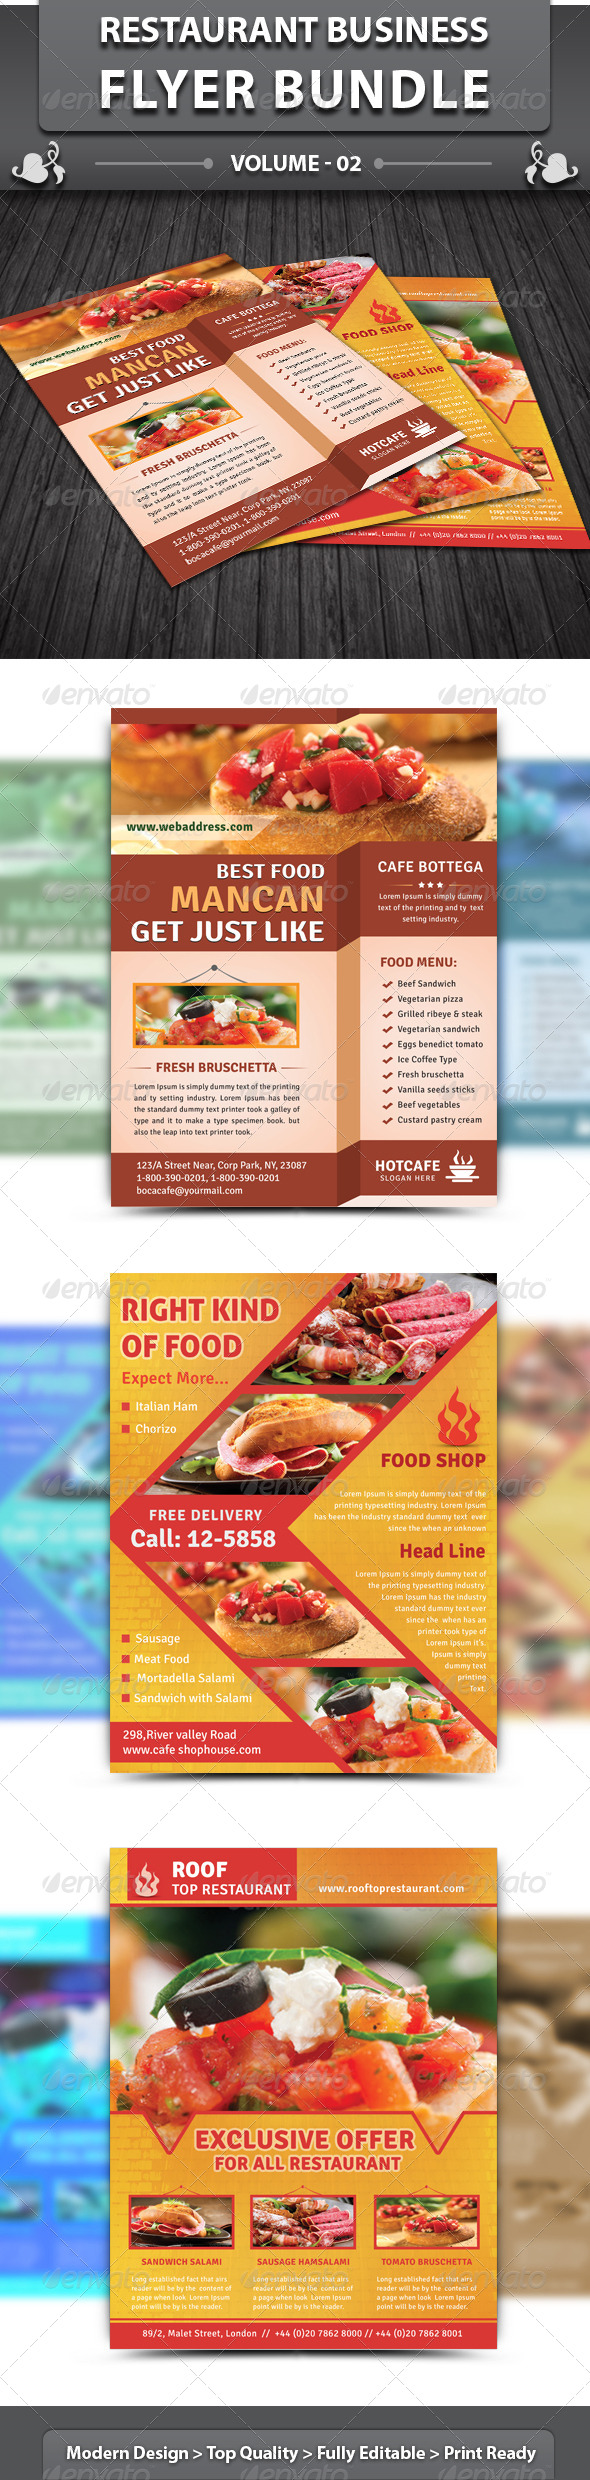 Restaurant Business Flyer | Bundle 2